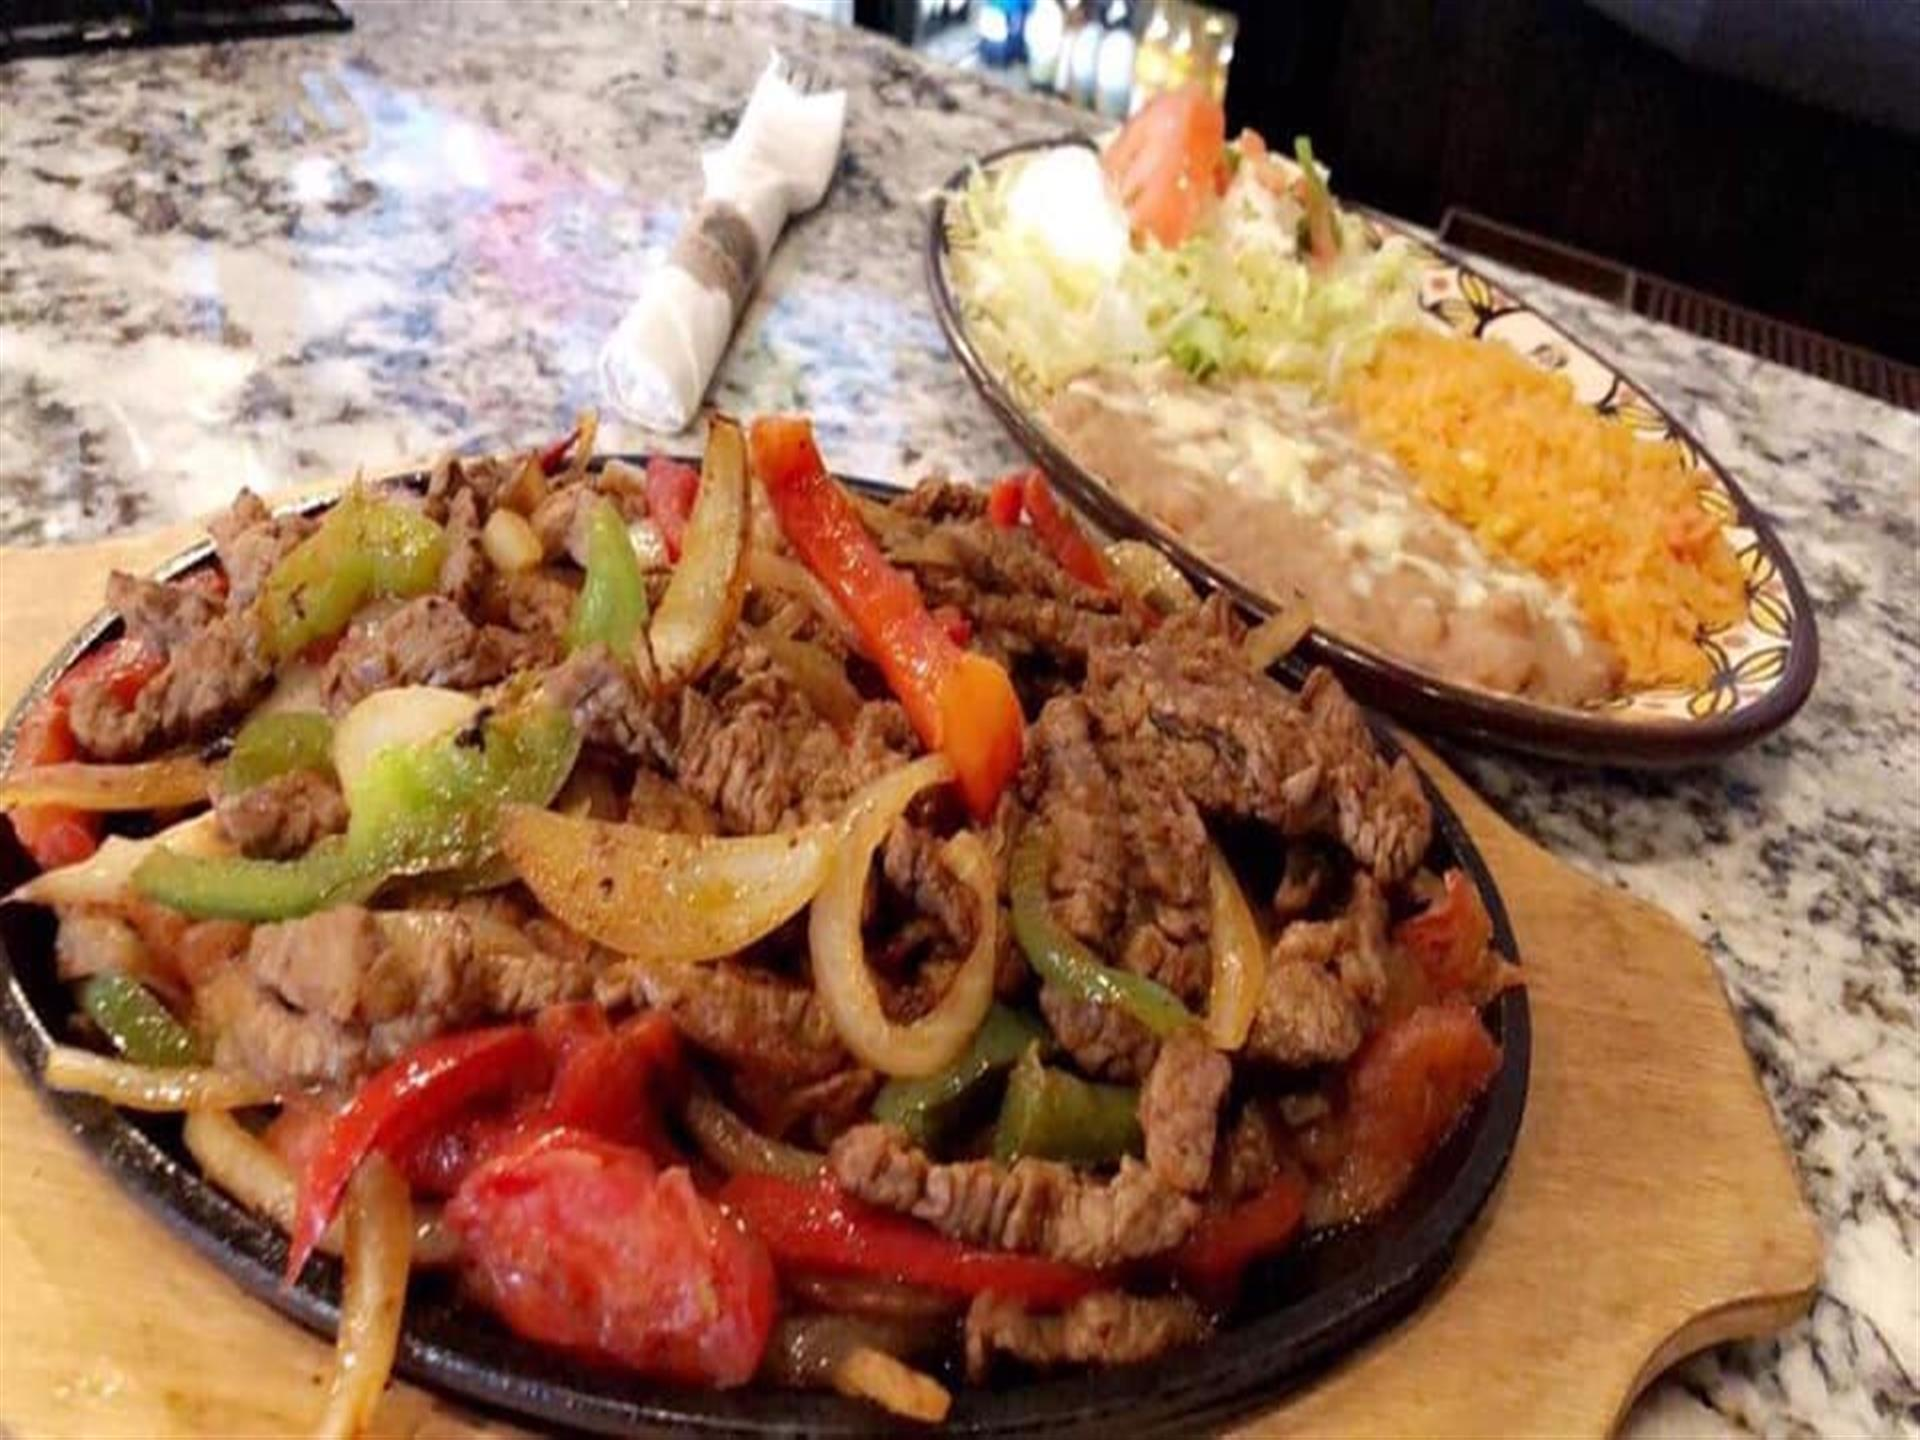 steak fajitas with rice and beans